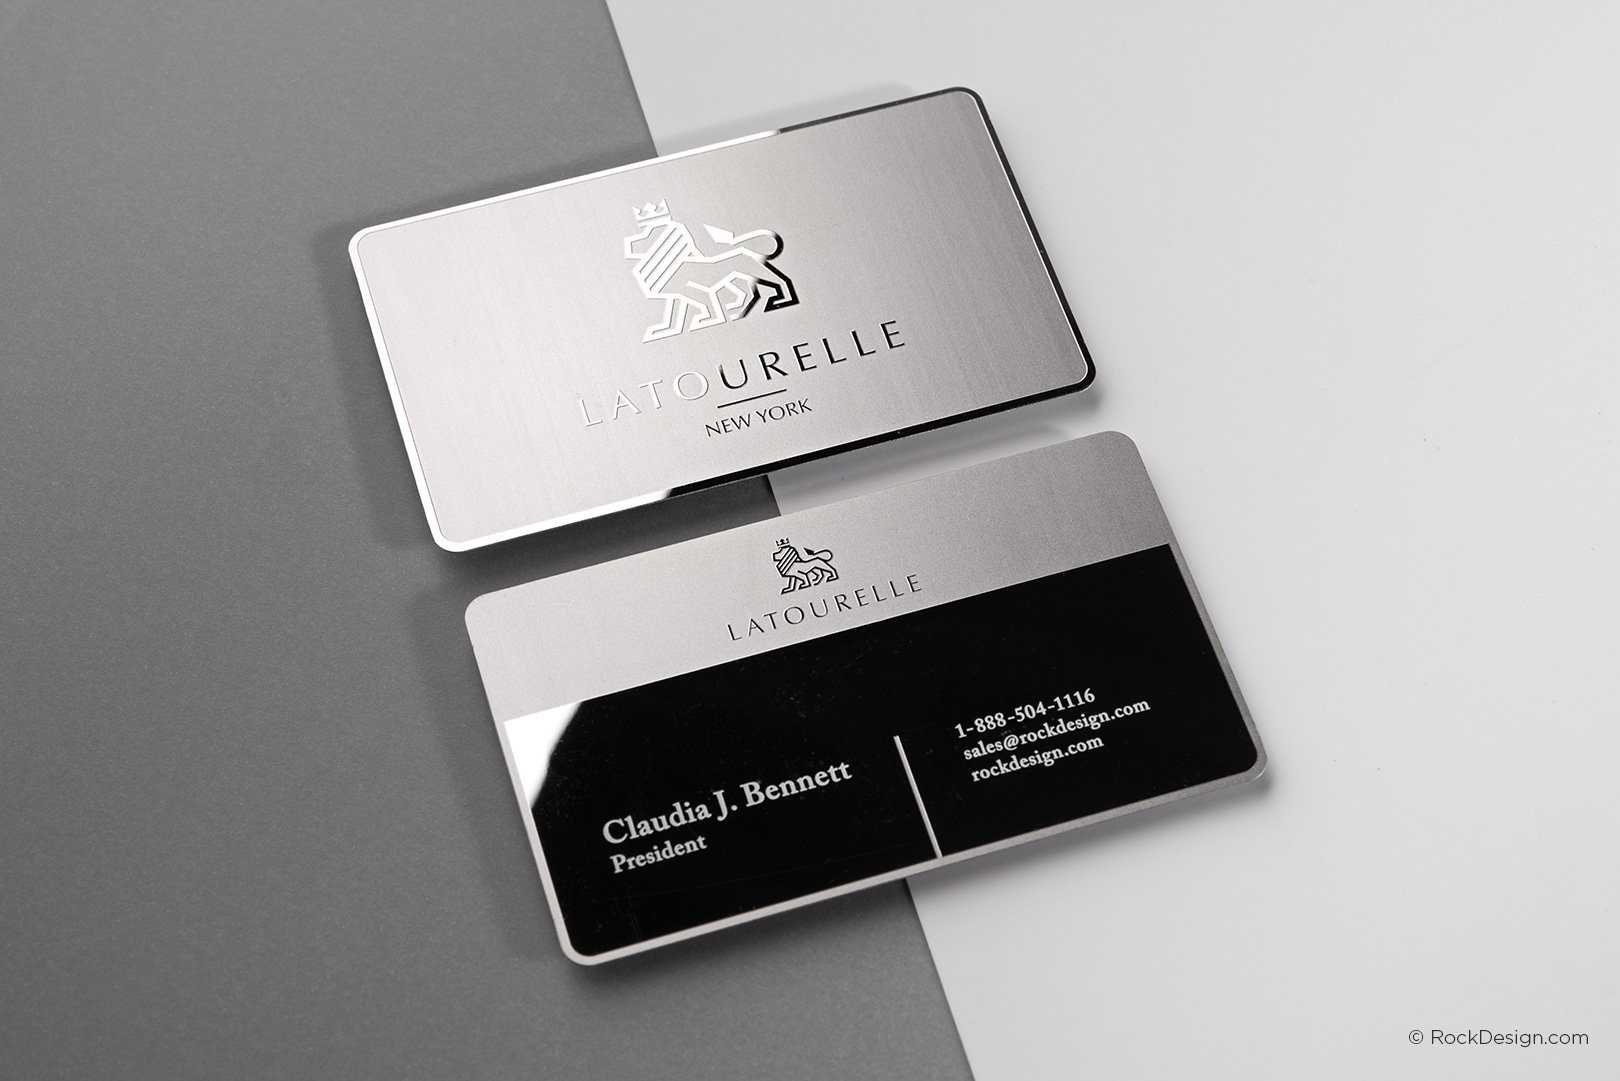 Free Lawyer Business Card Template | Rockdesign Within Legal Business Cards Templates Free